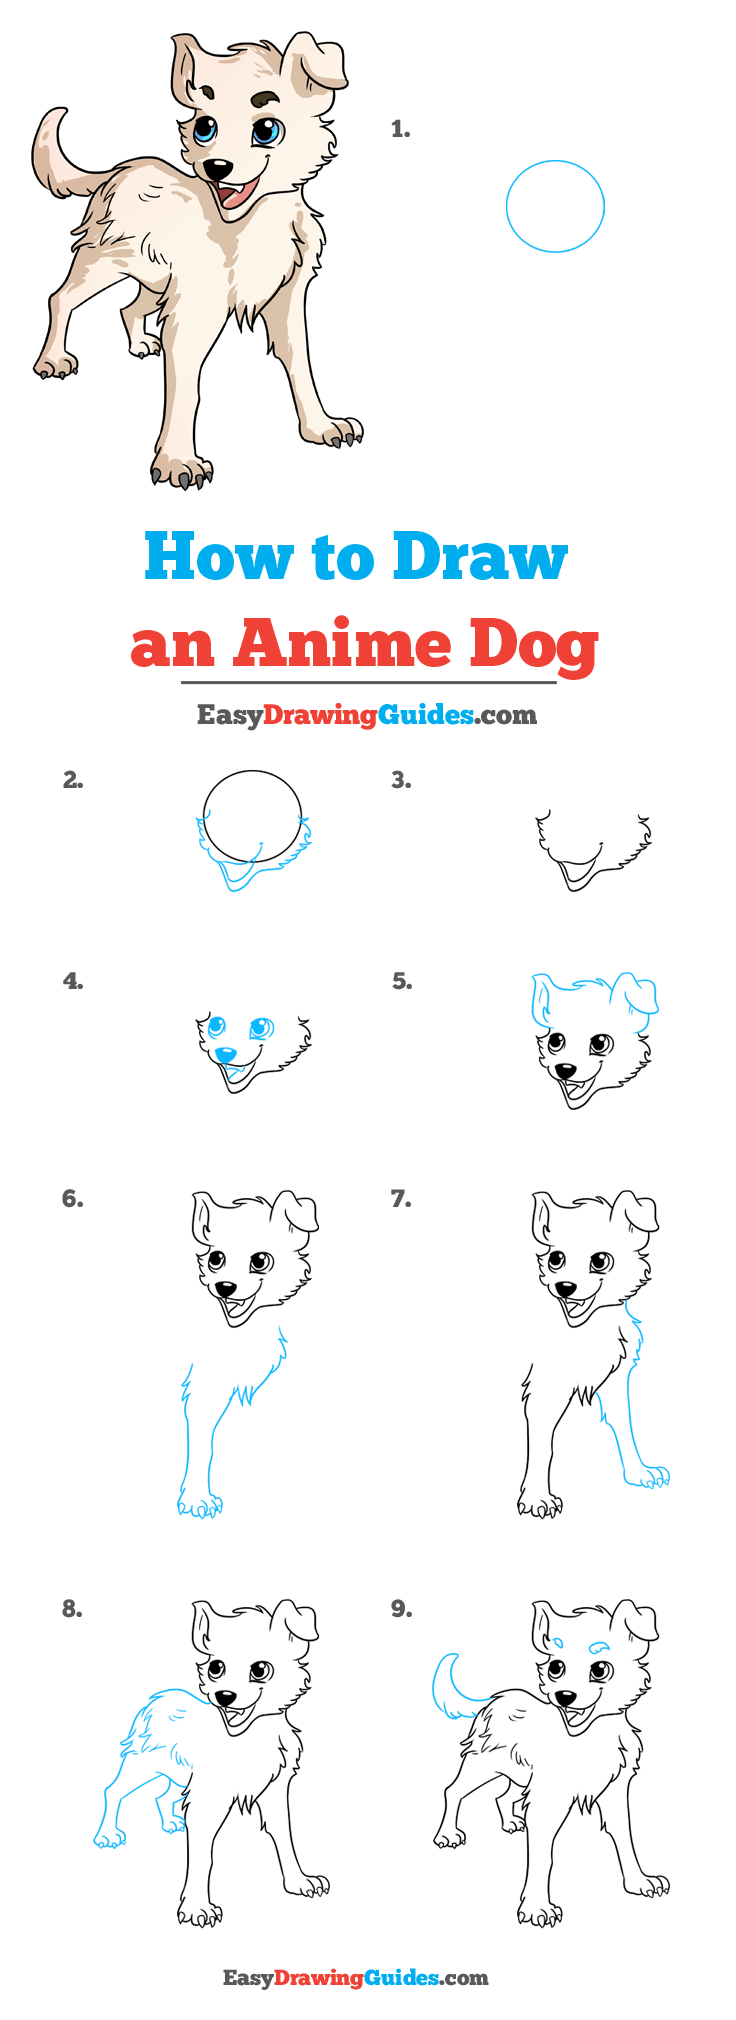 How to Draw an Anime Dog Step by Step Tutorial Image